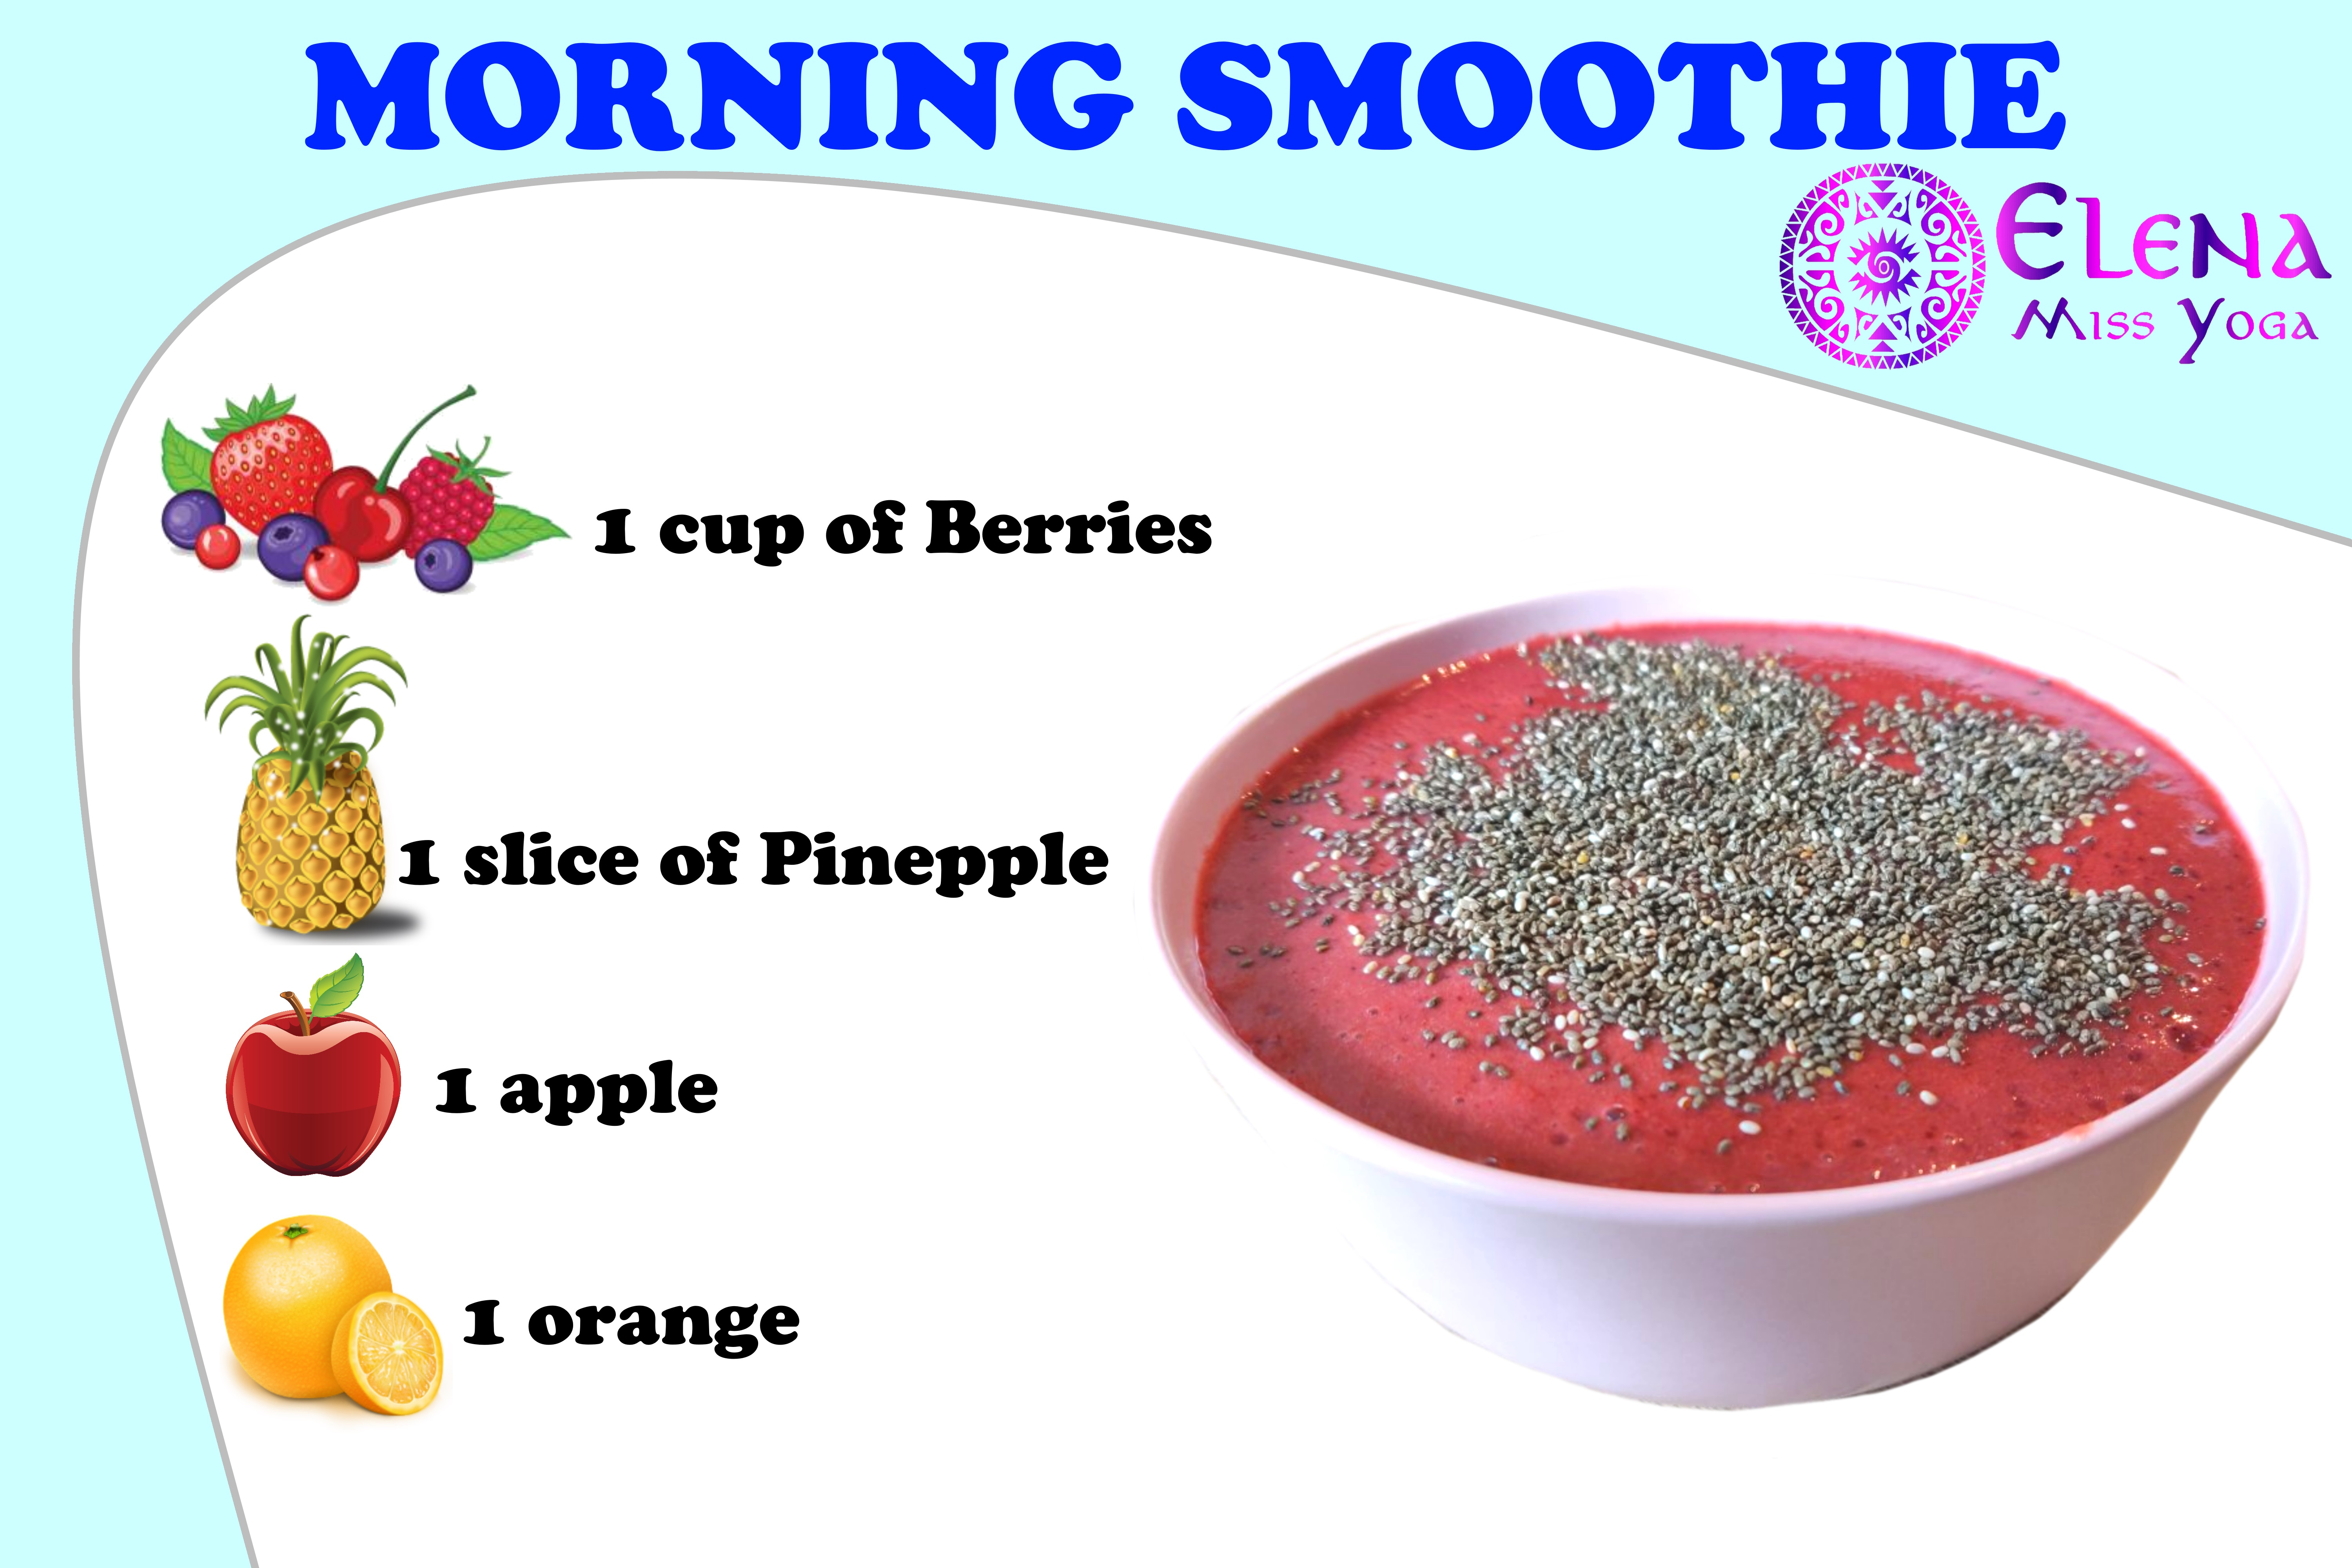 MY FAVOURITE MORNING SMOOTHIE